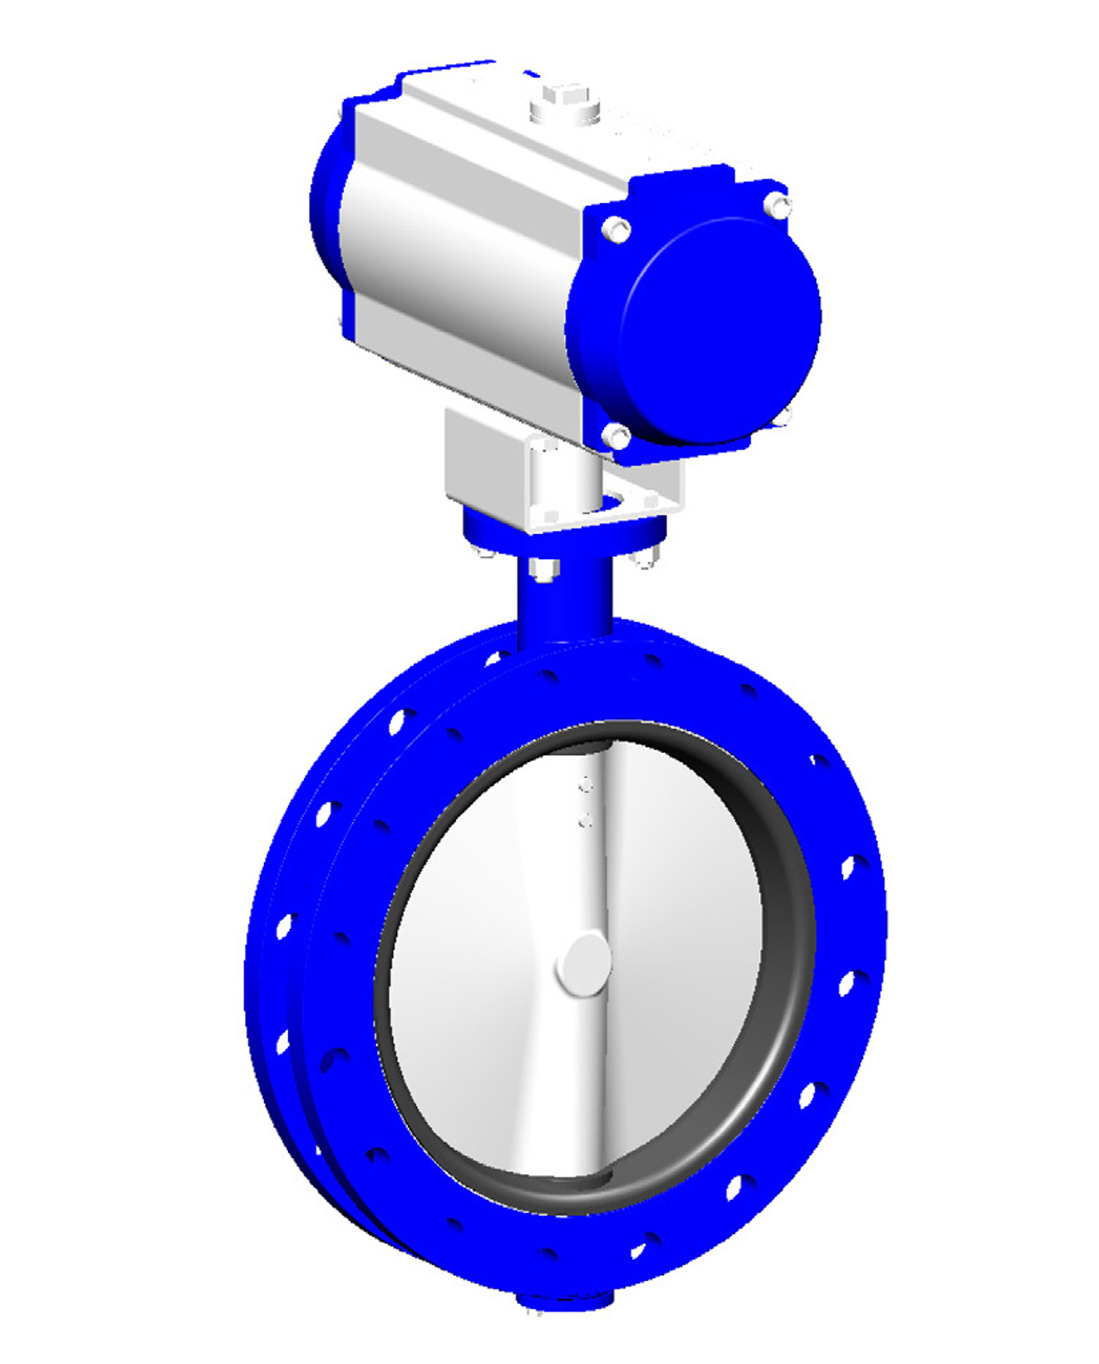 Double flanges type butterfly valve PN16 – ductile iron body – stainless steel disc – double acting pneumatic operator